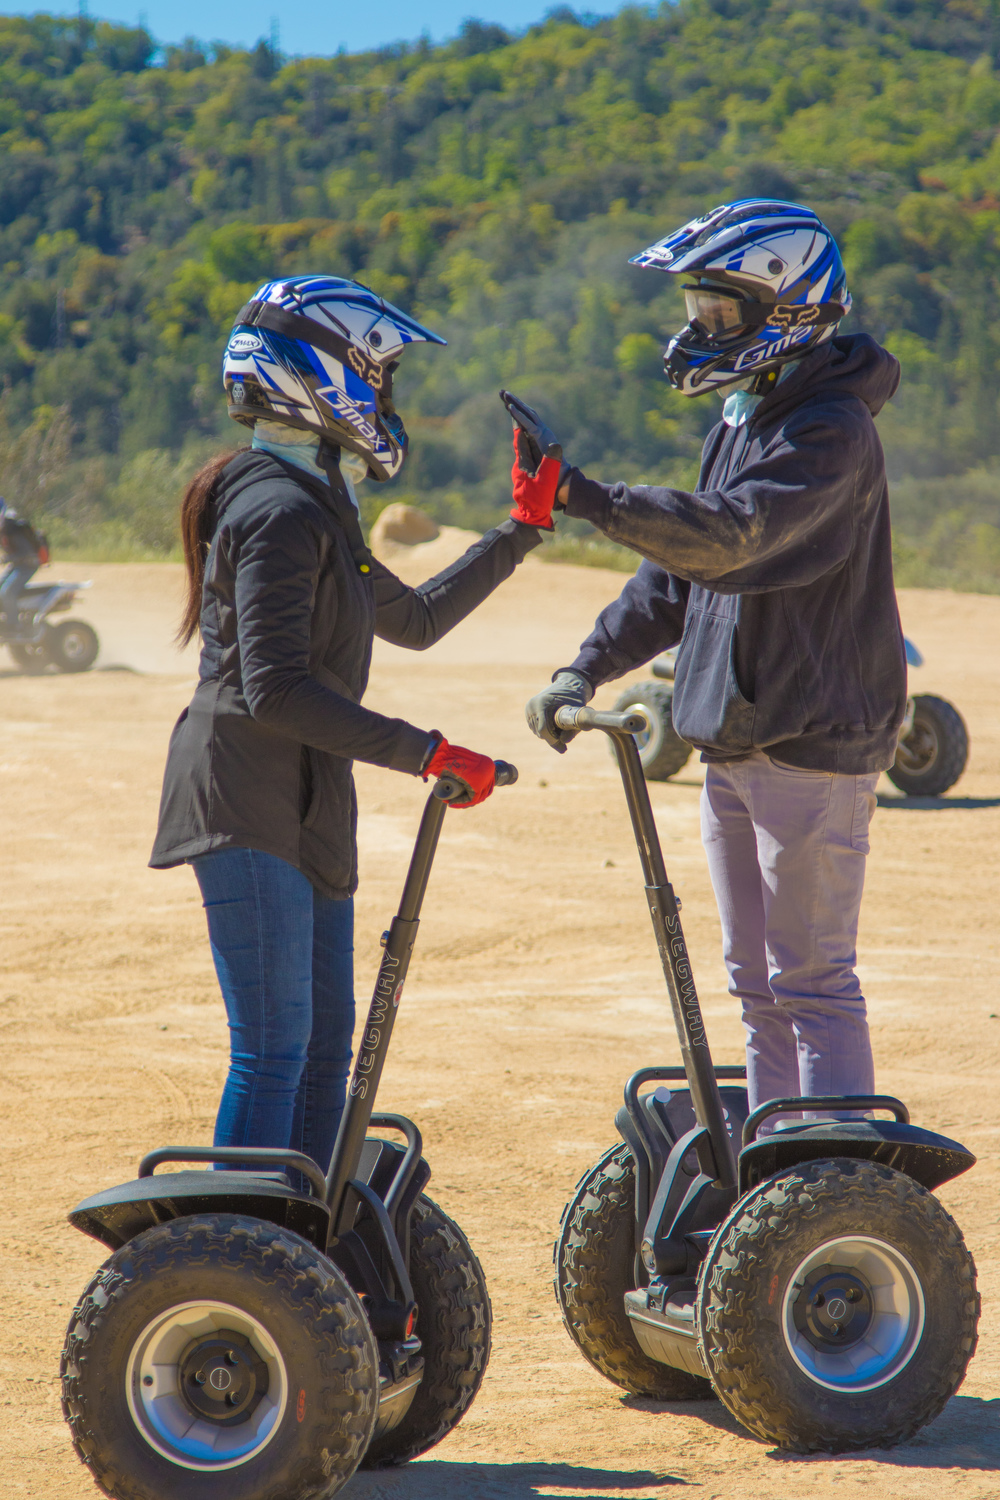 off-road segway tour ATV offroad segway x2 quad tour side by side rental couples adventures together atv quad 2up los angeles lake arrowhead santa barbara Big Bear, san diego, hungry valley, santa clarita, valencia, alpine, rowher, pismo, montecito, burbank, thousand oaks